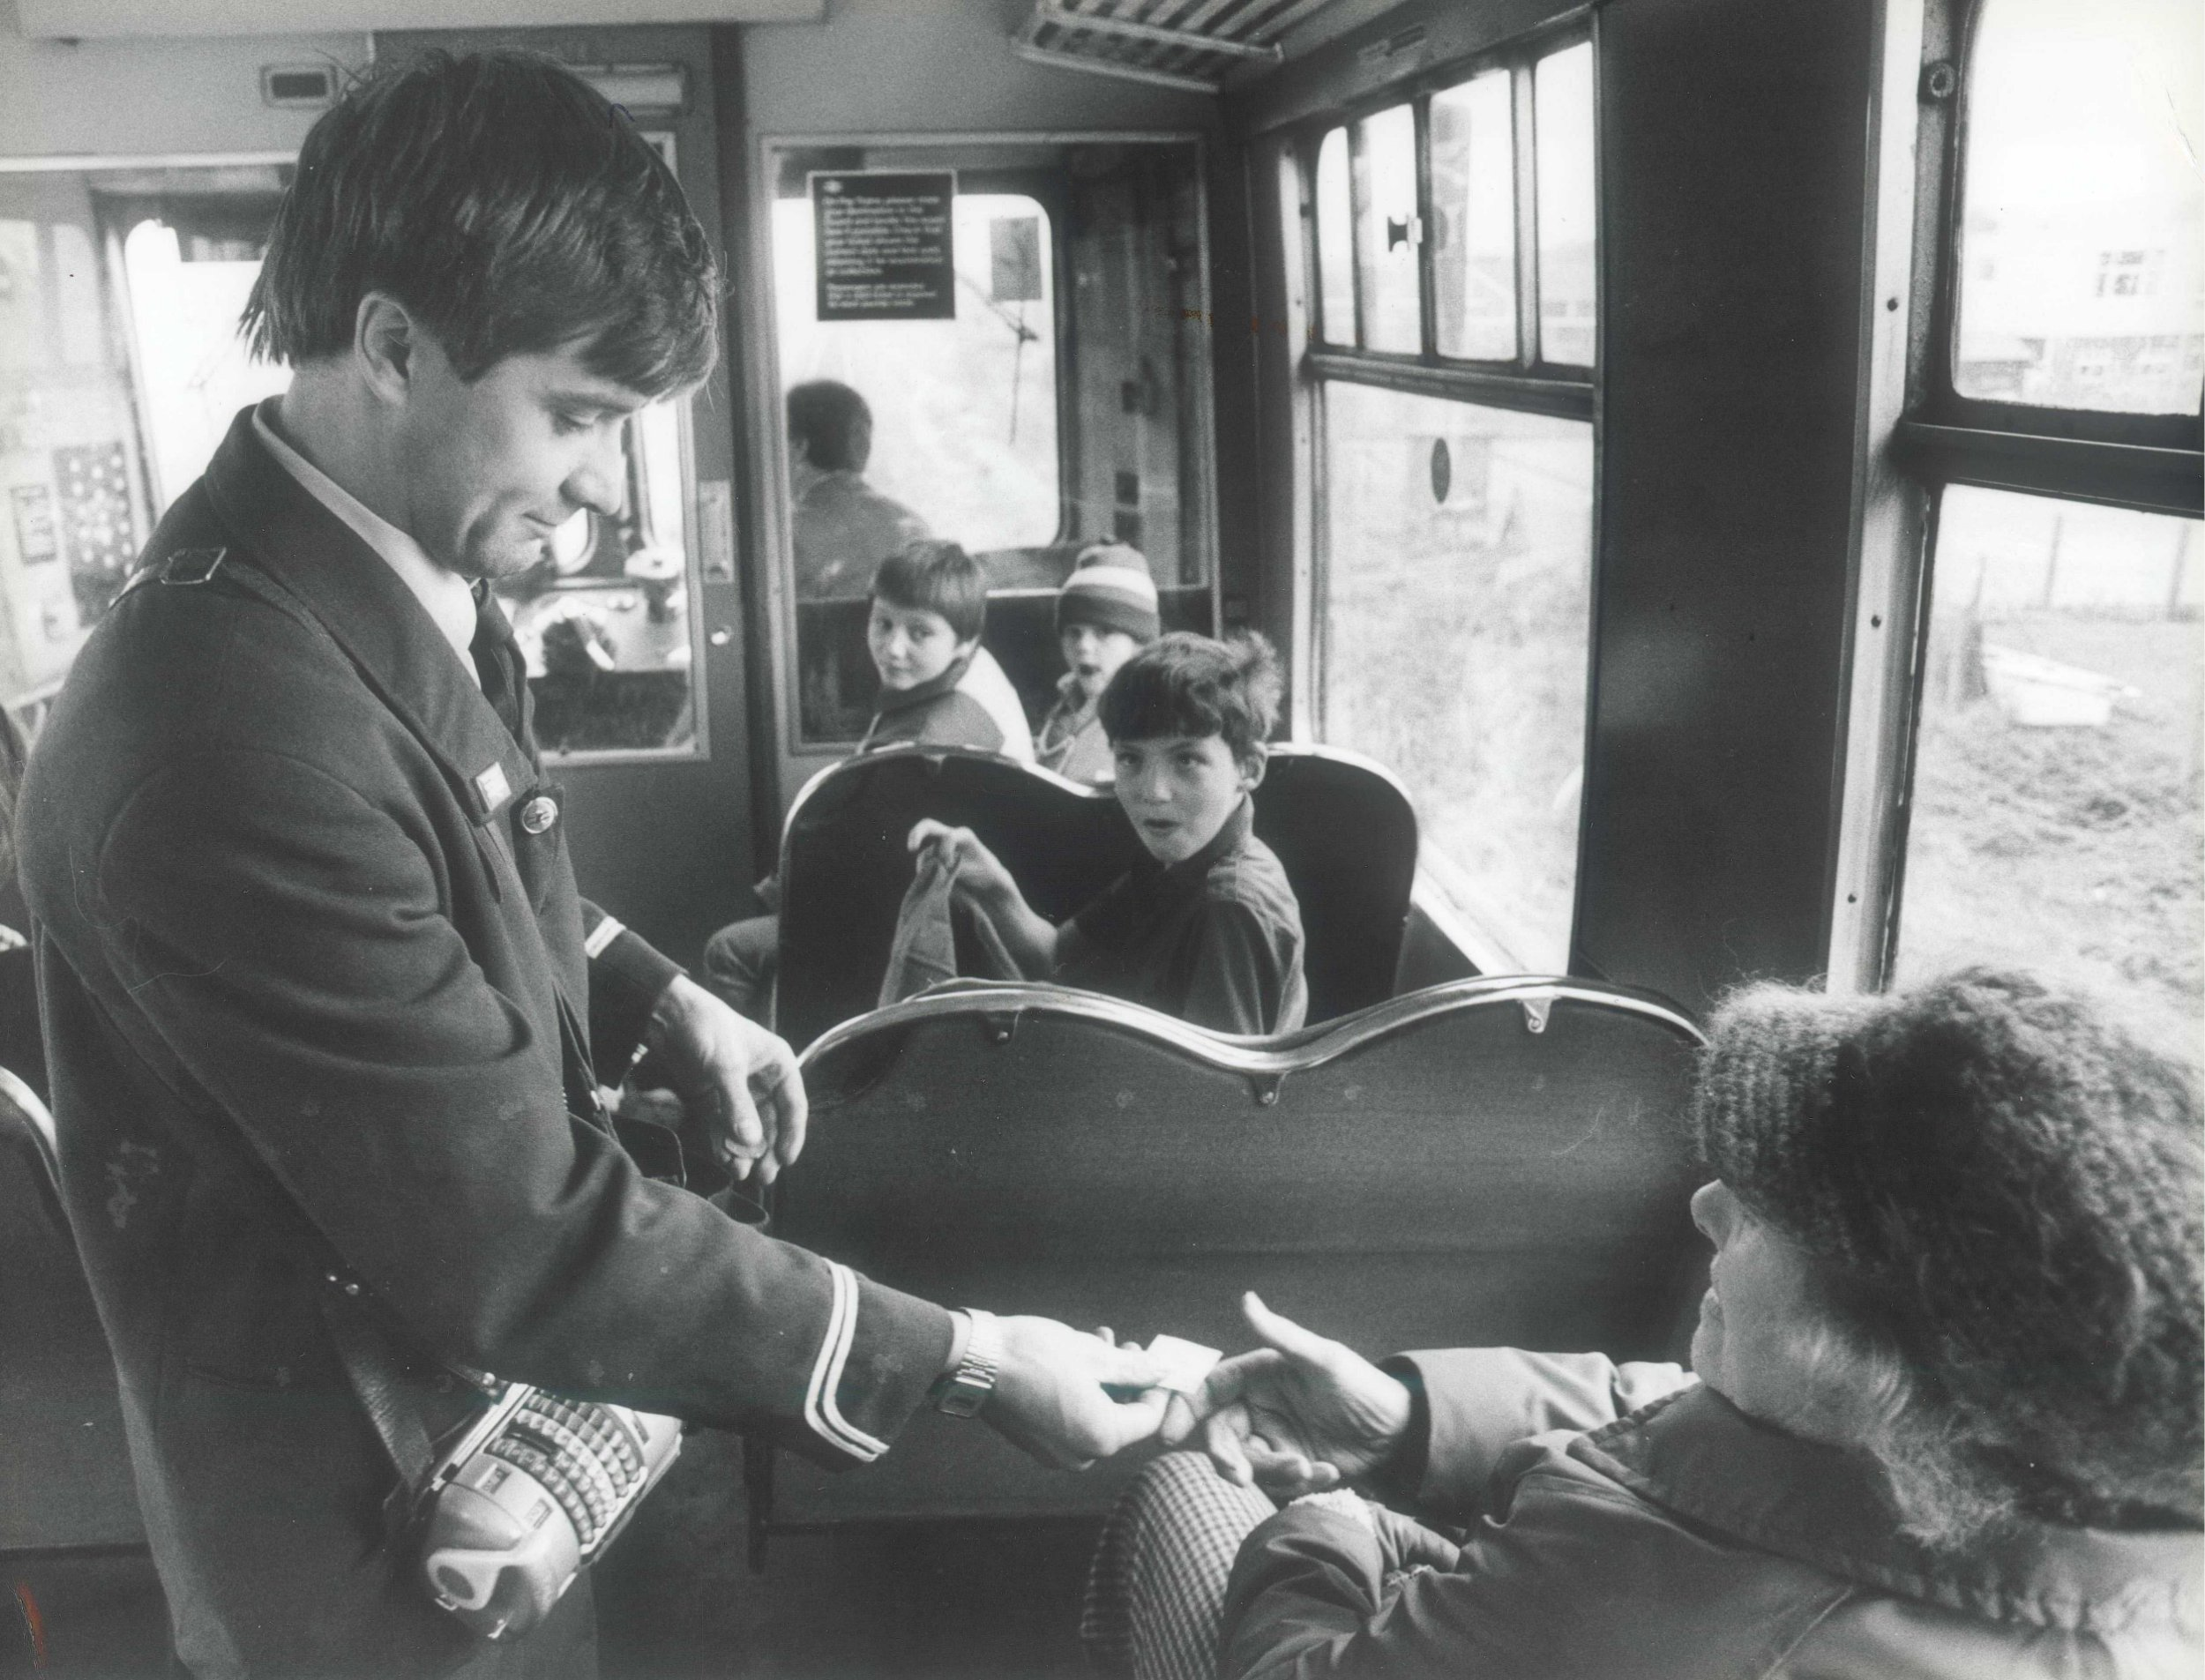 TRAIN conductors are set to stop clipping passengers¿ tickets ¿ so that they won¿t get sore wrists...Abellio Greater Anglia today said it will phase out the 150-year-old tradition after health and safety requests from scores of its front-line staff...Employees often see up to 600 travellers on a single journey...Just the ticket - conductor Peter Francis clips passengers' tickets on a train in Norfolk in october 1983.